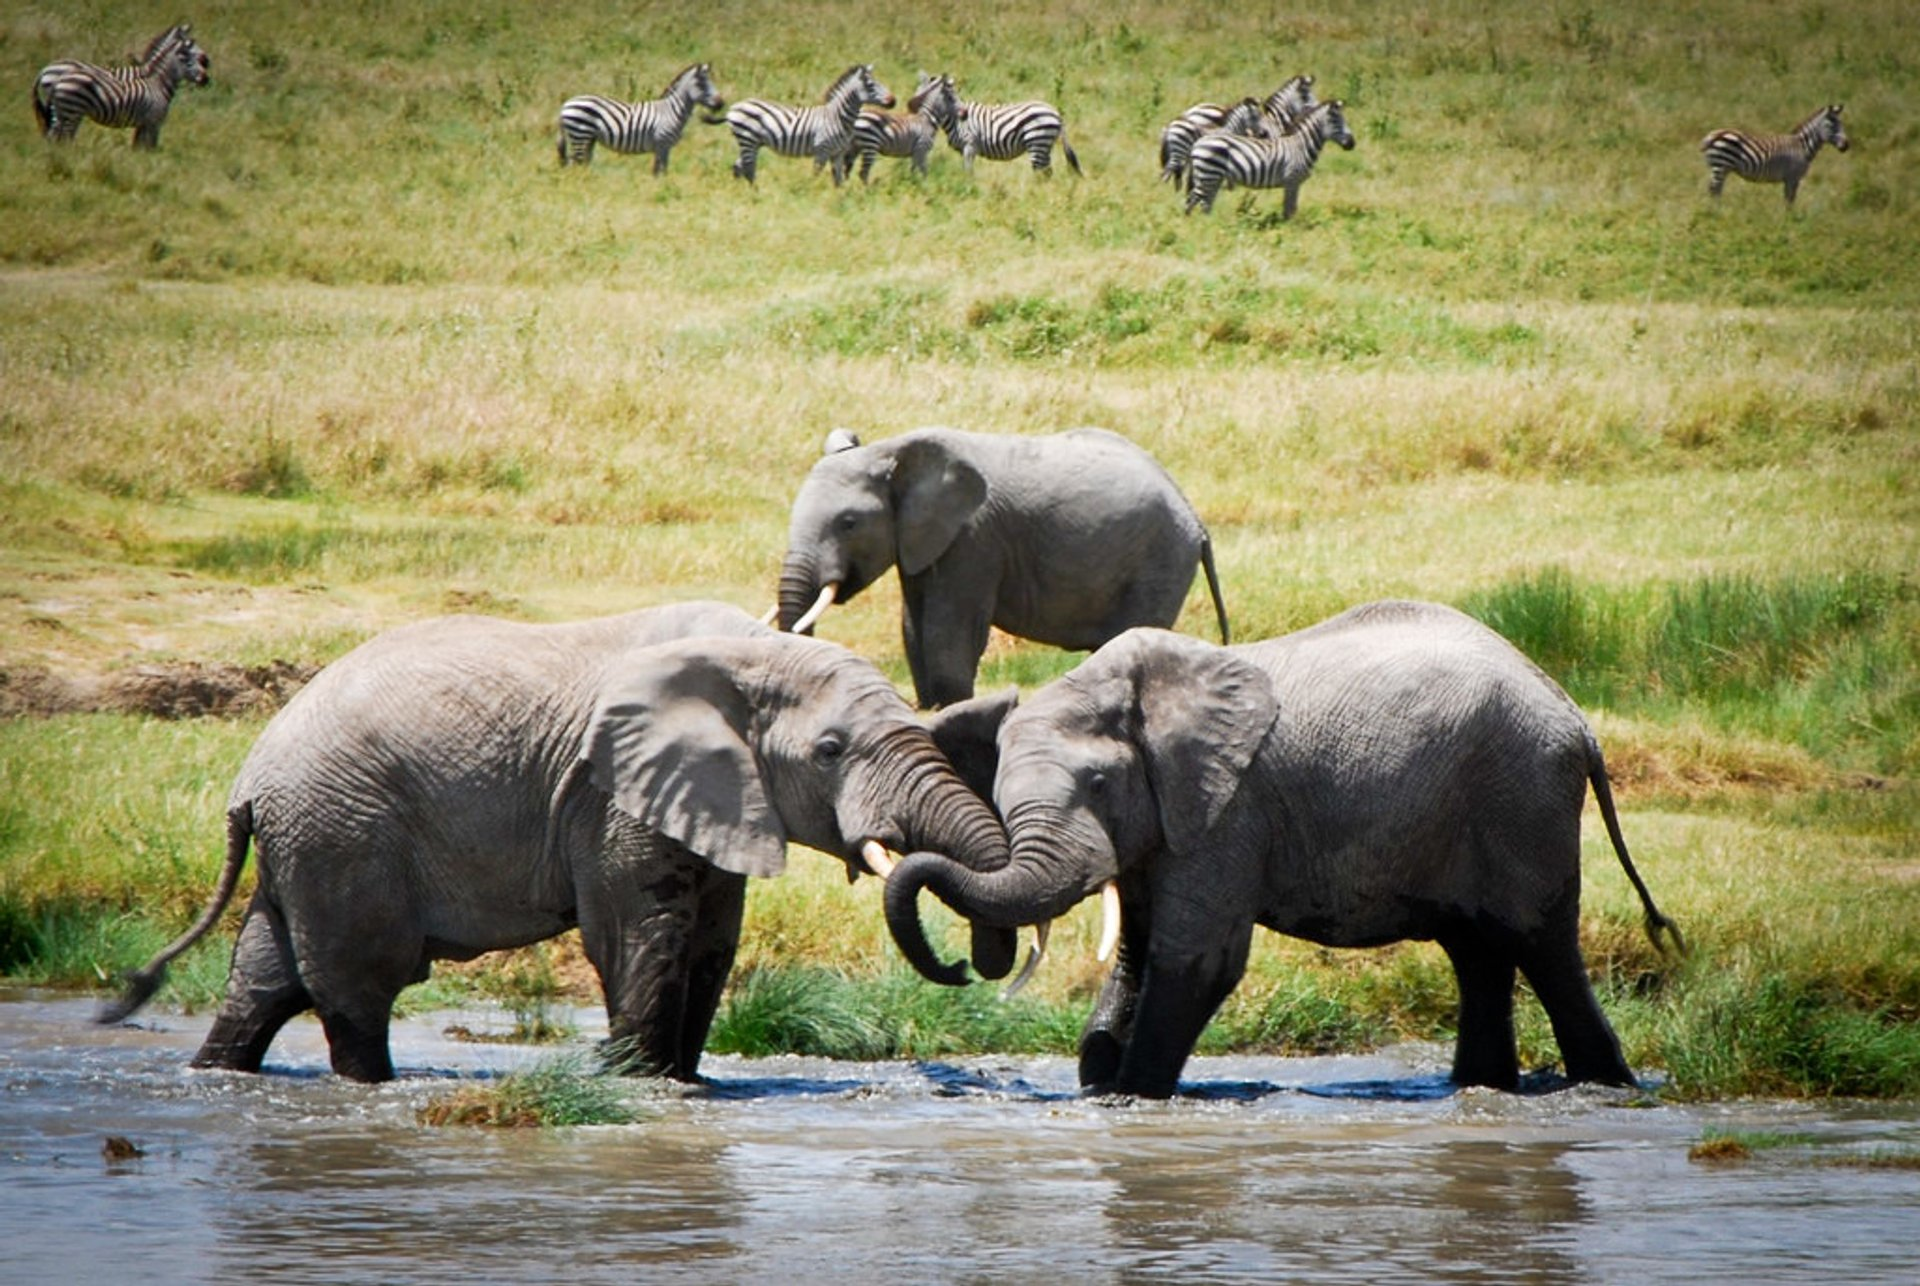 Elephant Herds in Tanzania 2020 - Best Time